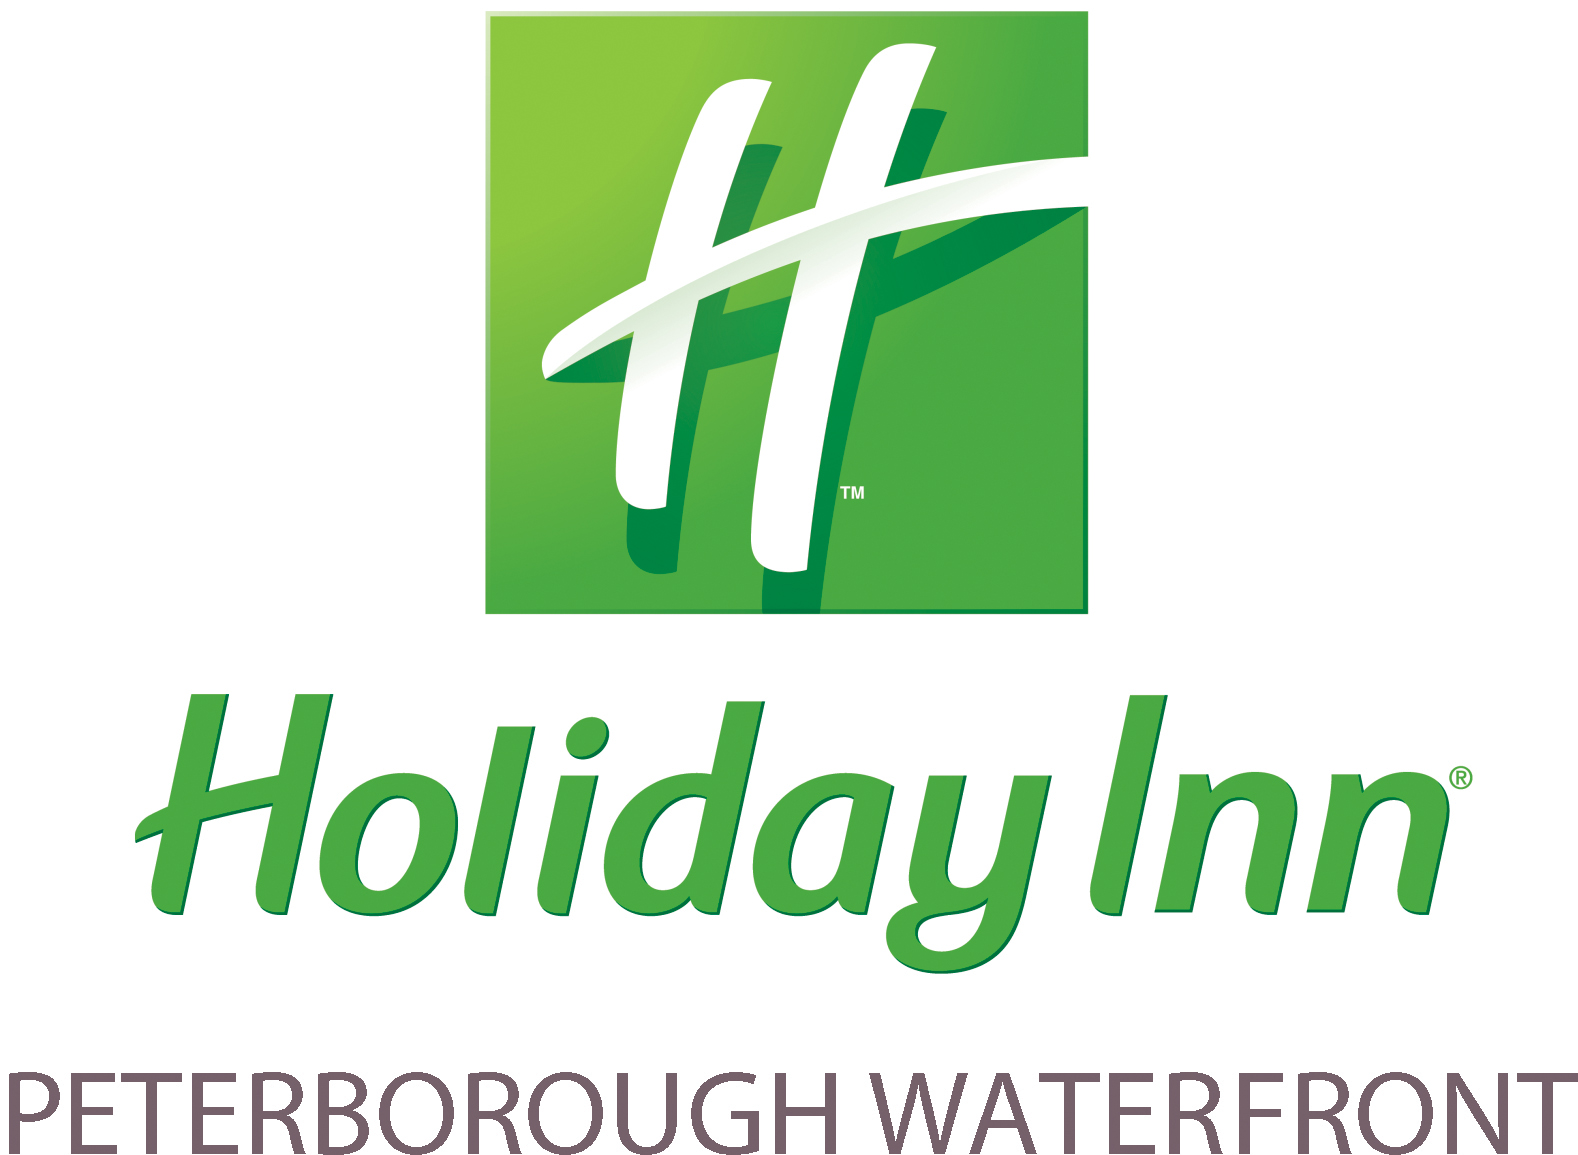 Holiday Inn Peterborough Waterfront company logo